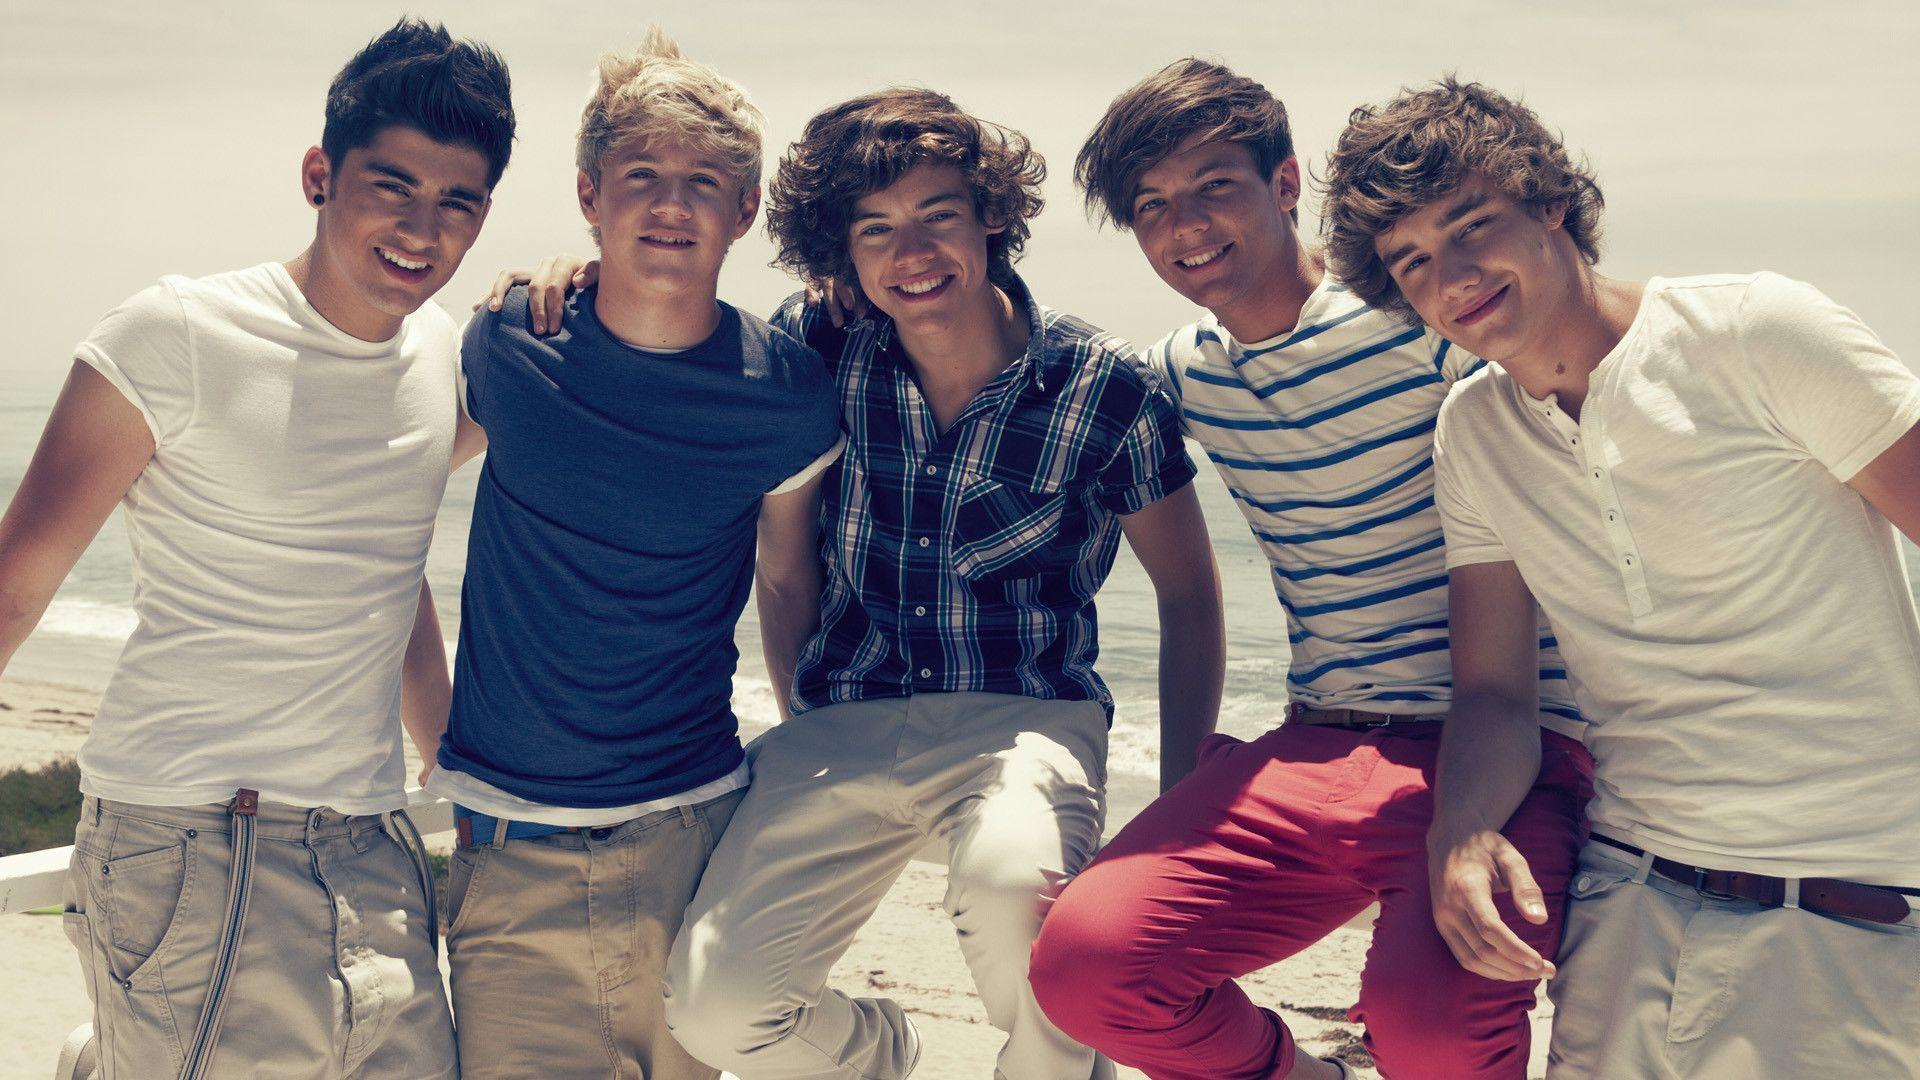 sexy one direction wallpaper - photo #2